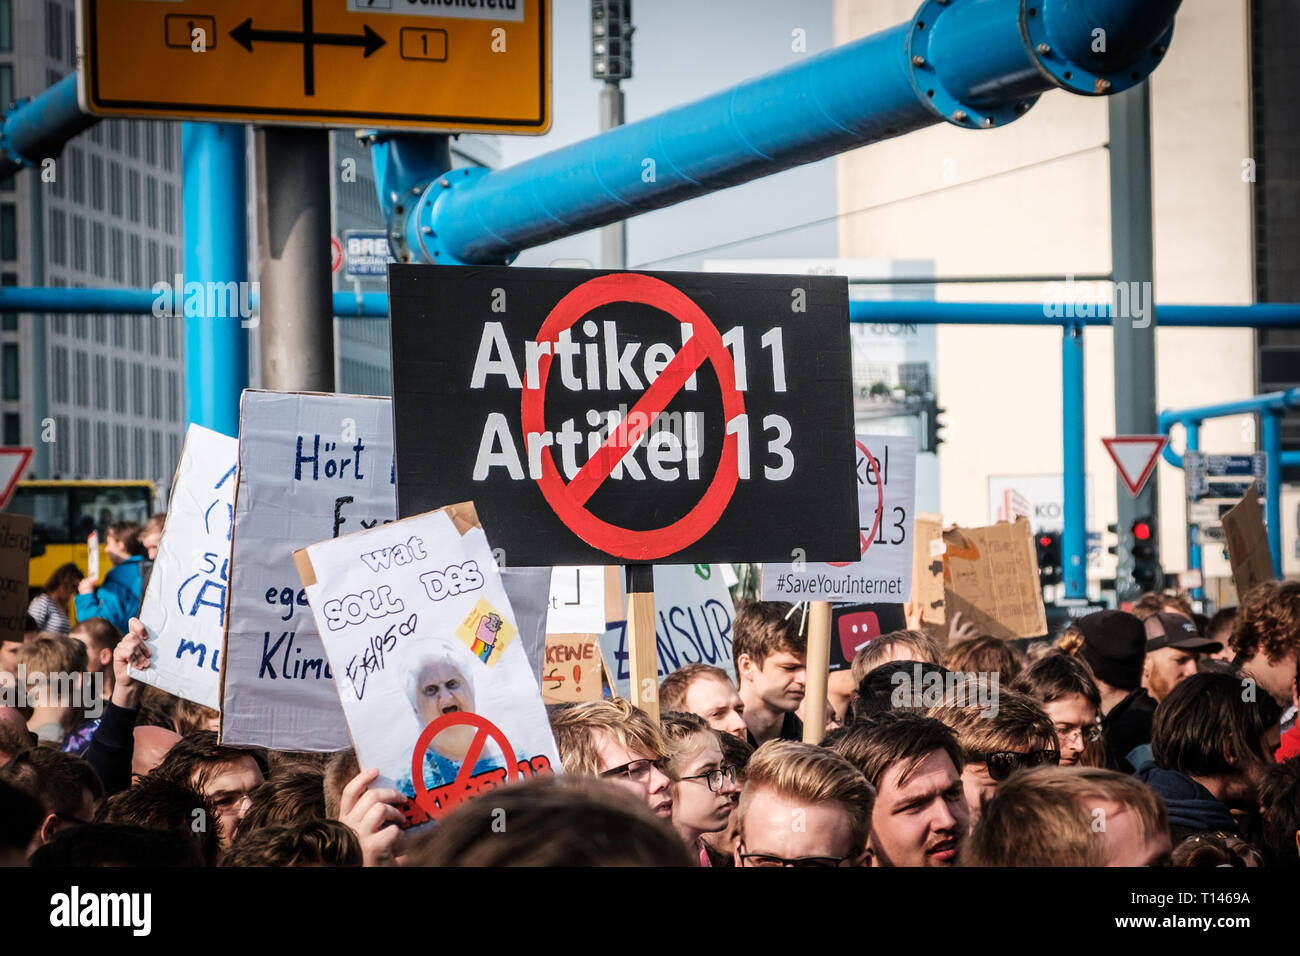 Berlin, Germany - march 23, 2019: Demonstration against EU copyright reform  / article 11 and article 13  in Berlin Germany. Stock Photo